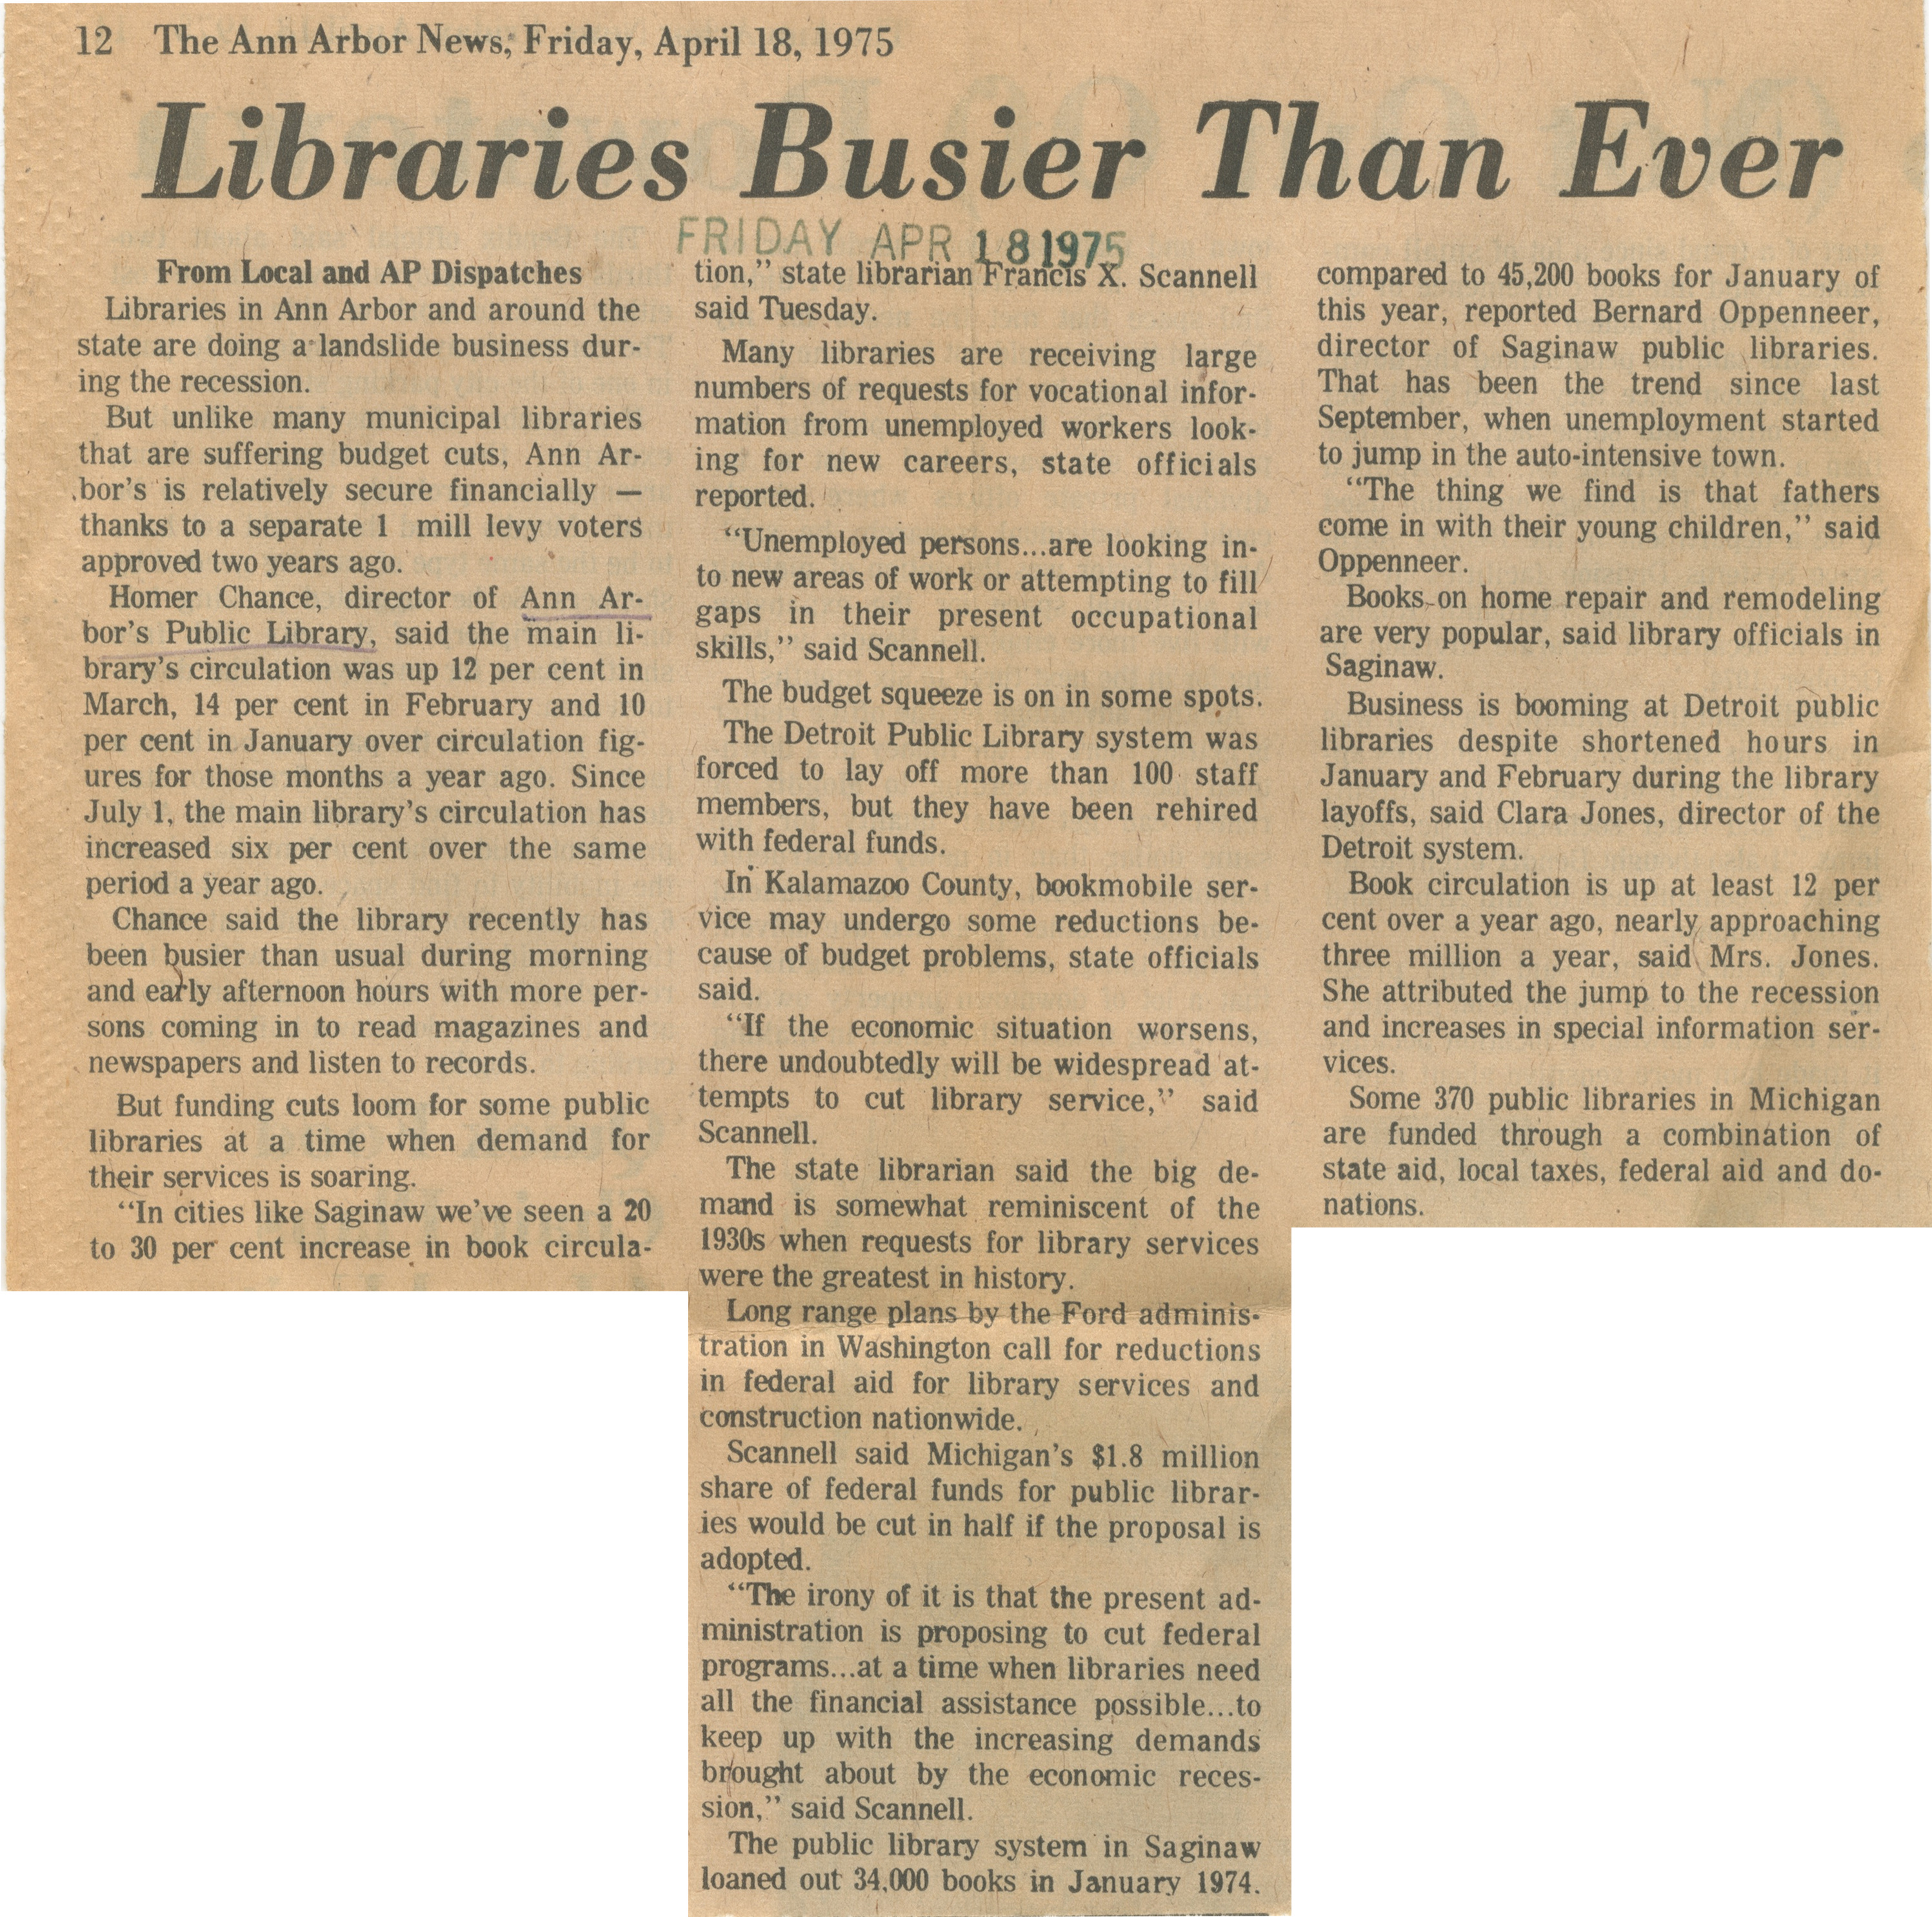 Libraries Busier Than Ever image